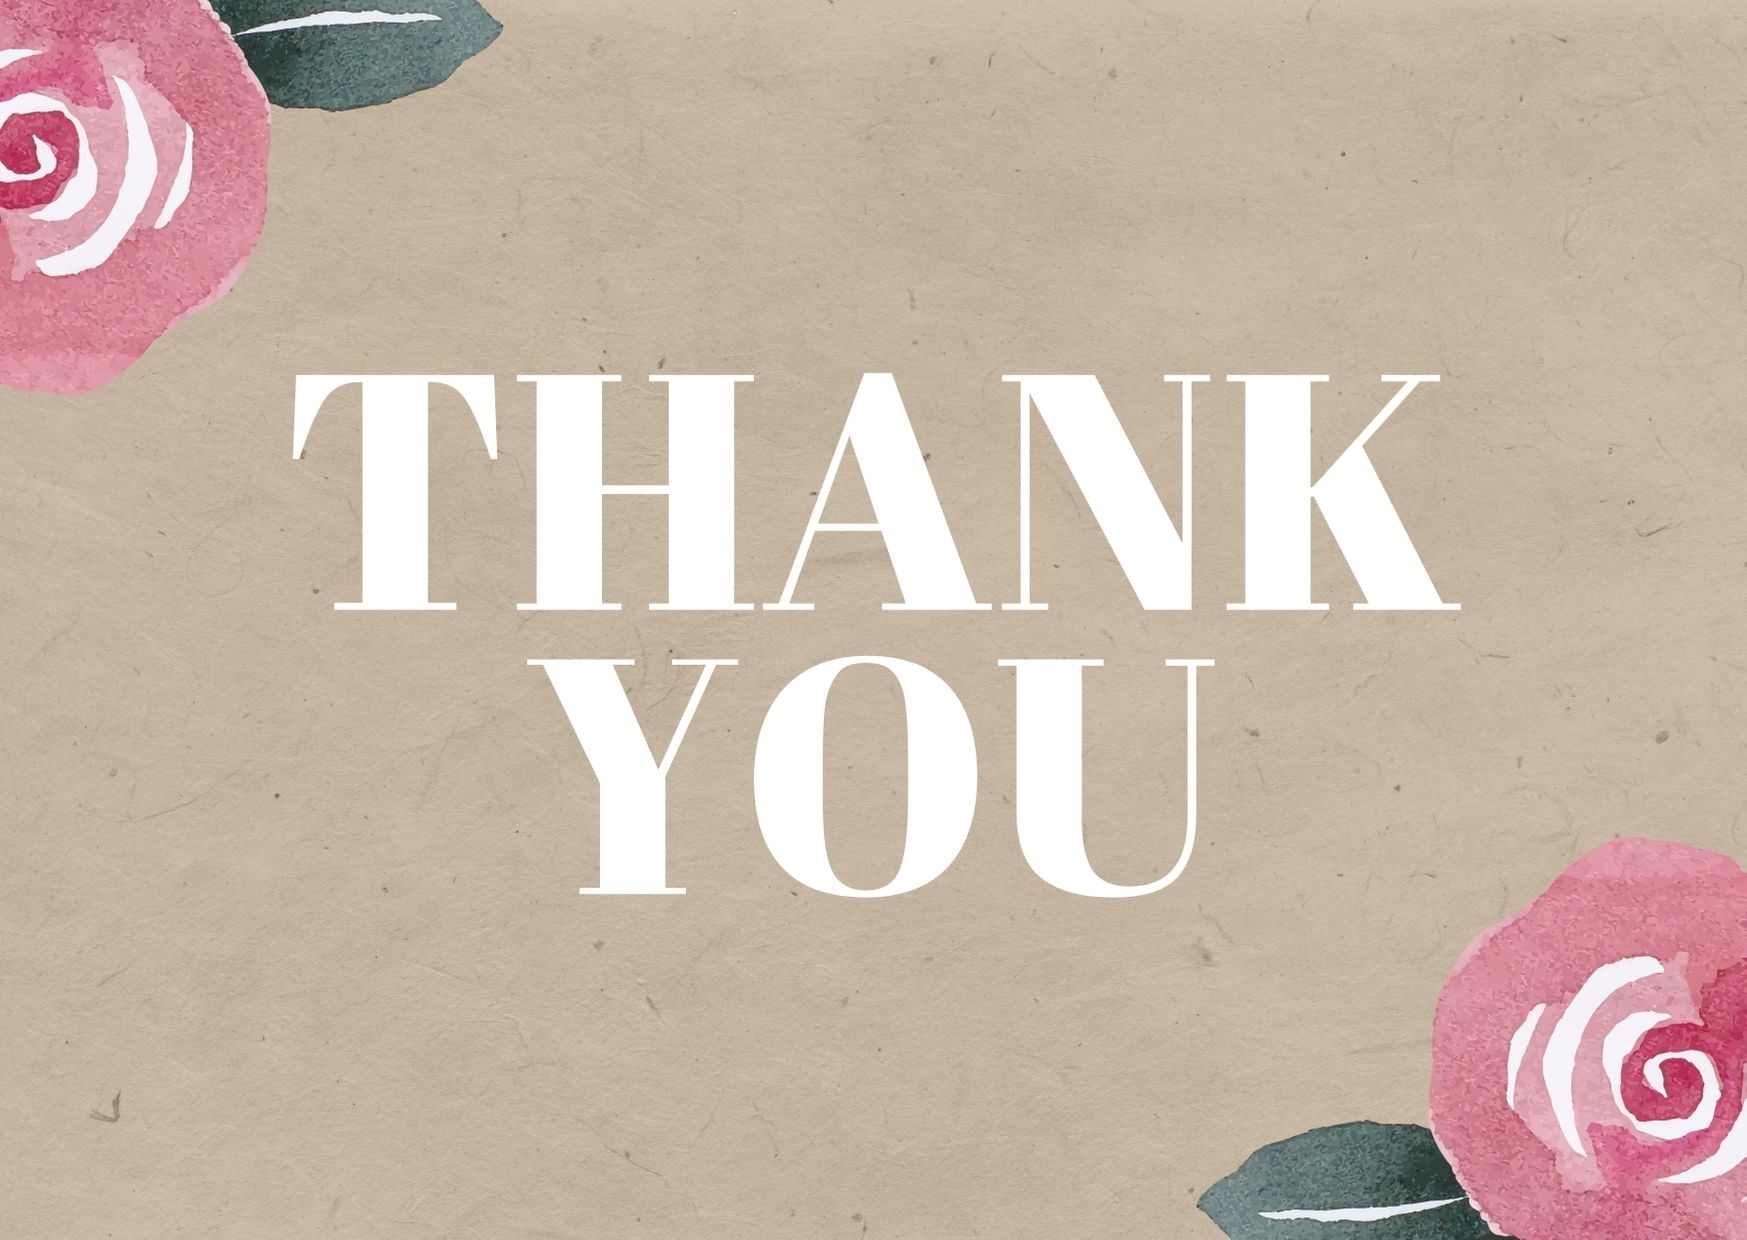 Thank you - Lymm ostepathic